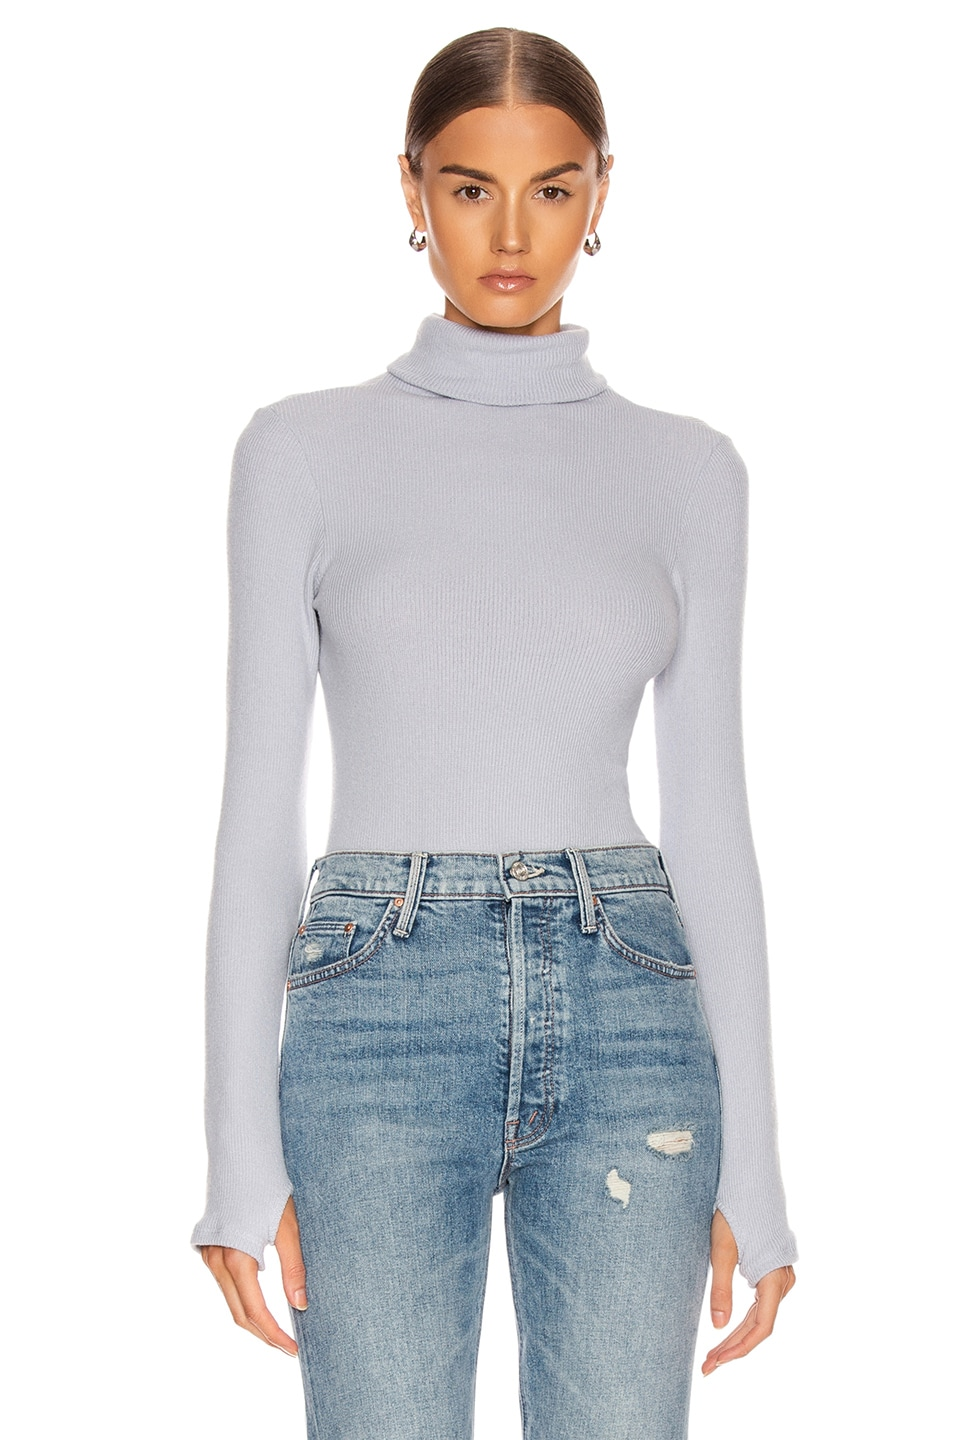 Image 1 of Enza Costa Sweater Knit Long Sleeve Turtleneck Sweater in Ice Blue